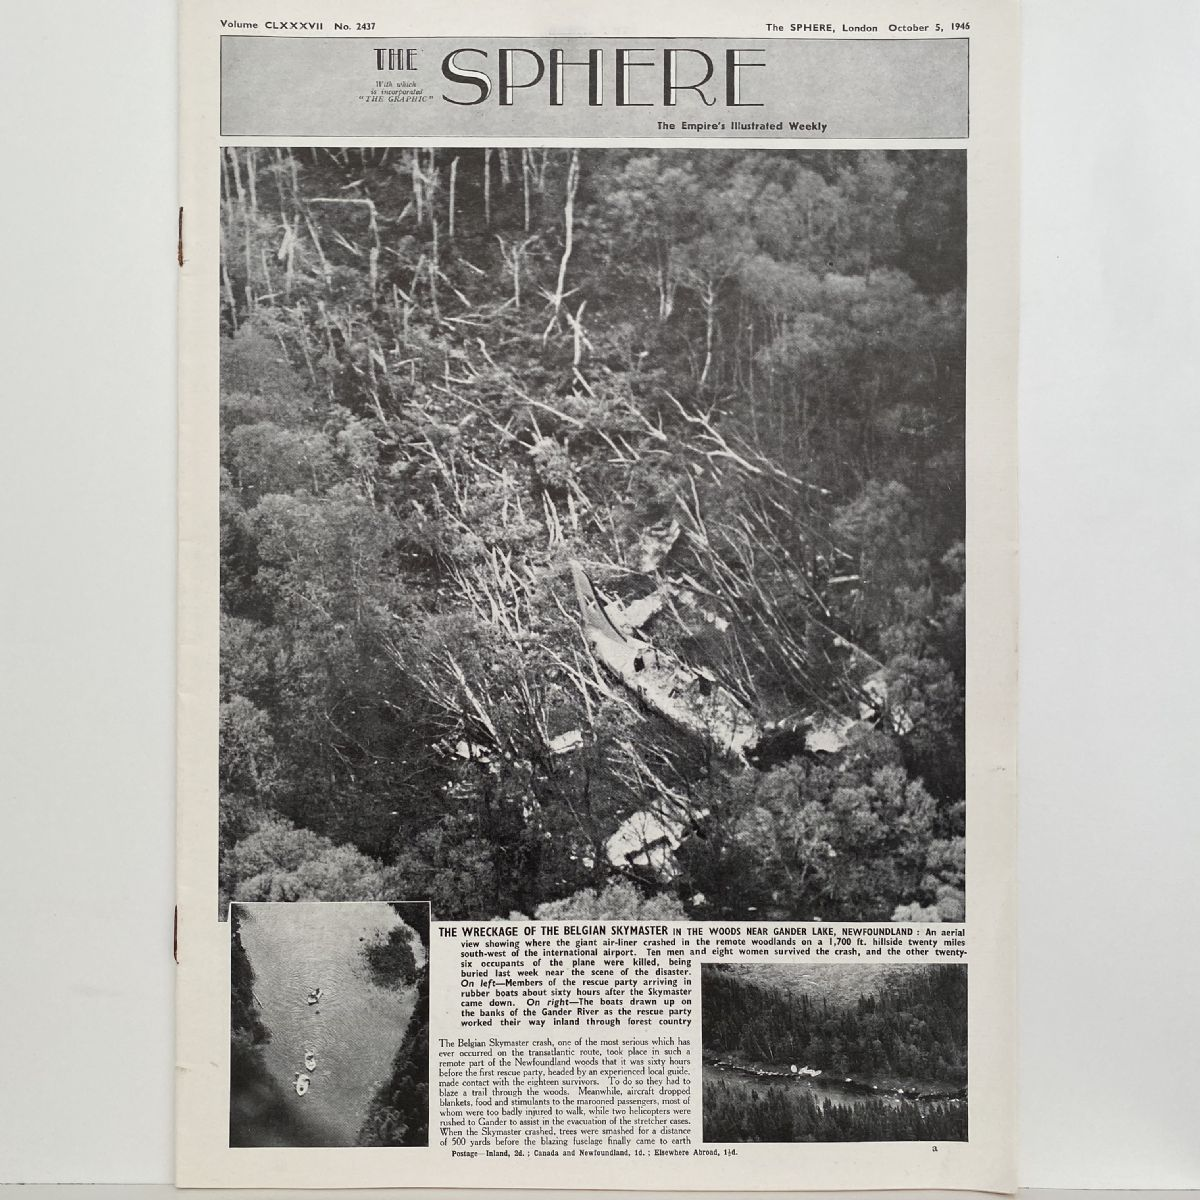 THE SPHERE The Empire's Illustrated Weekly. October 5, 1946. No.2437